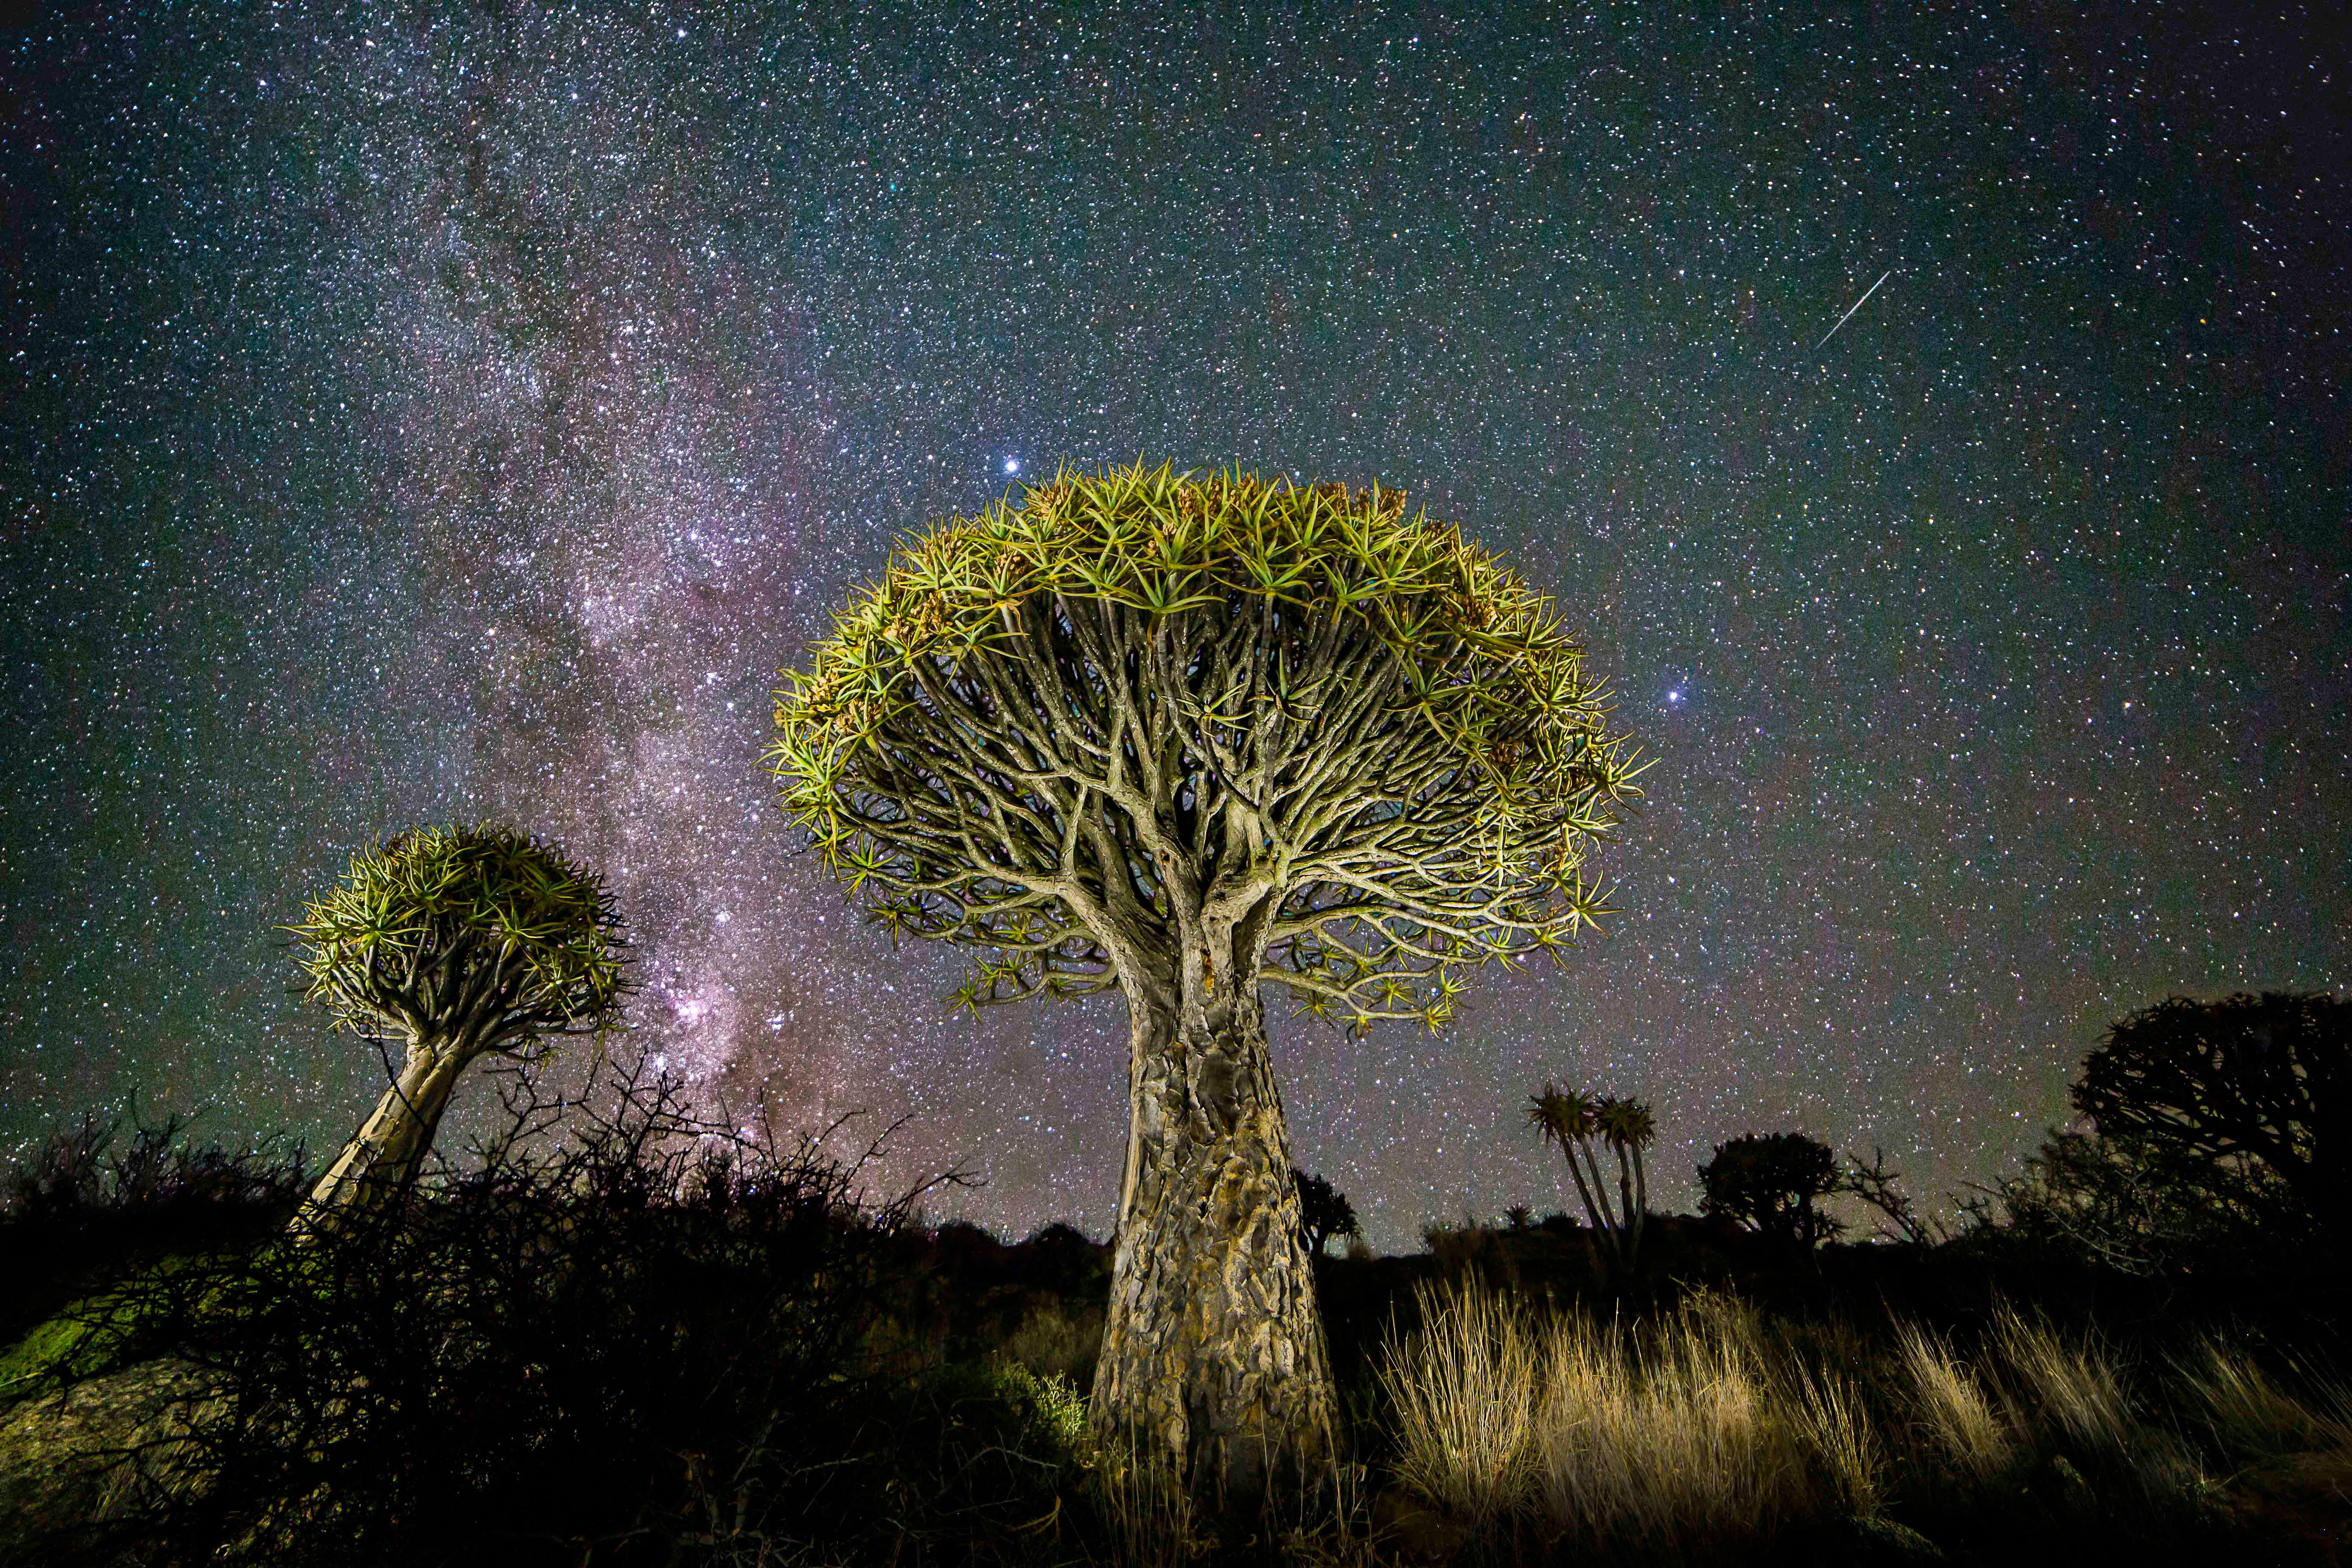 In Pictures: Astronomy Photographer of the Year 2015 releases sneak peek at entries